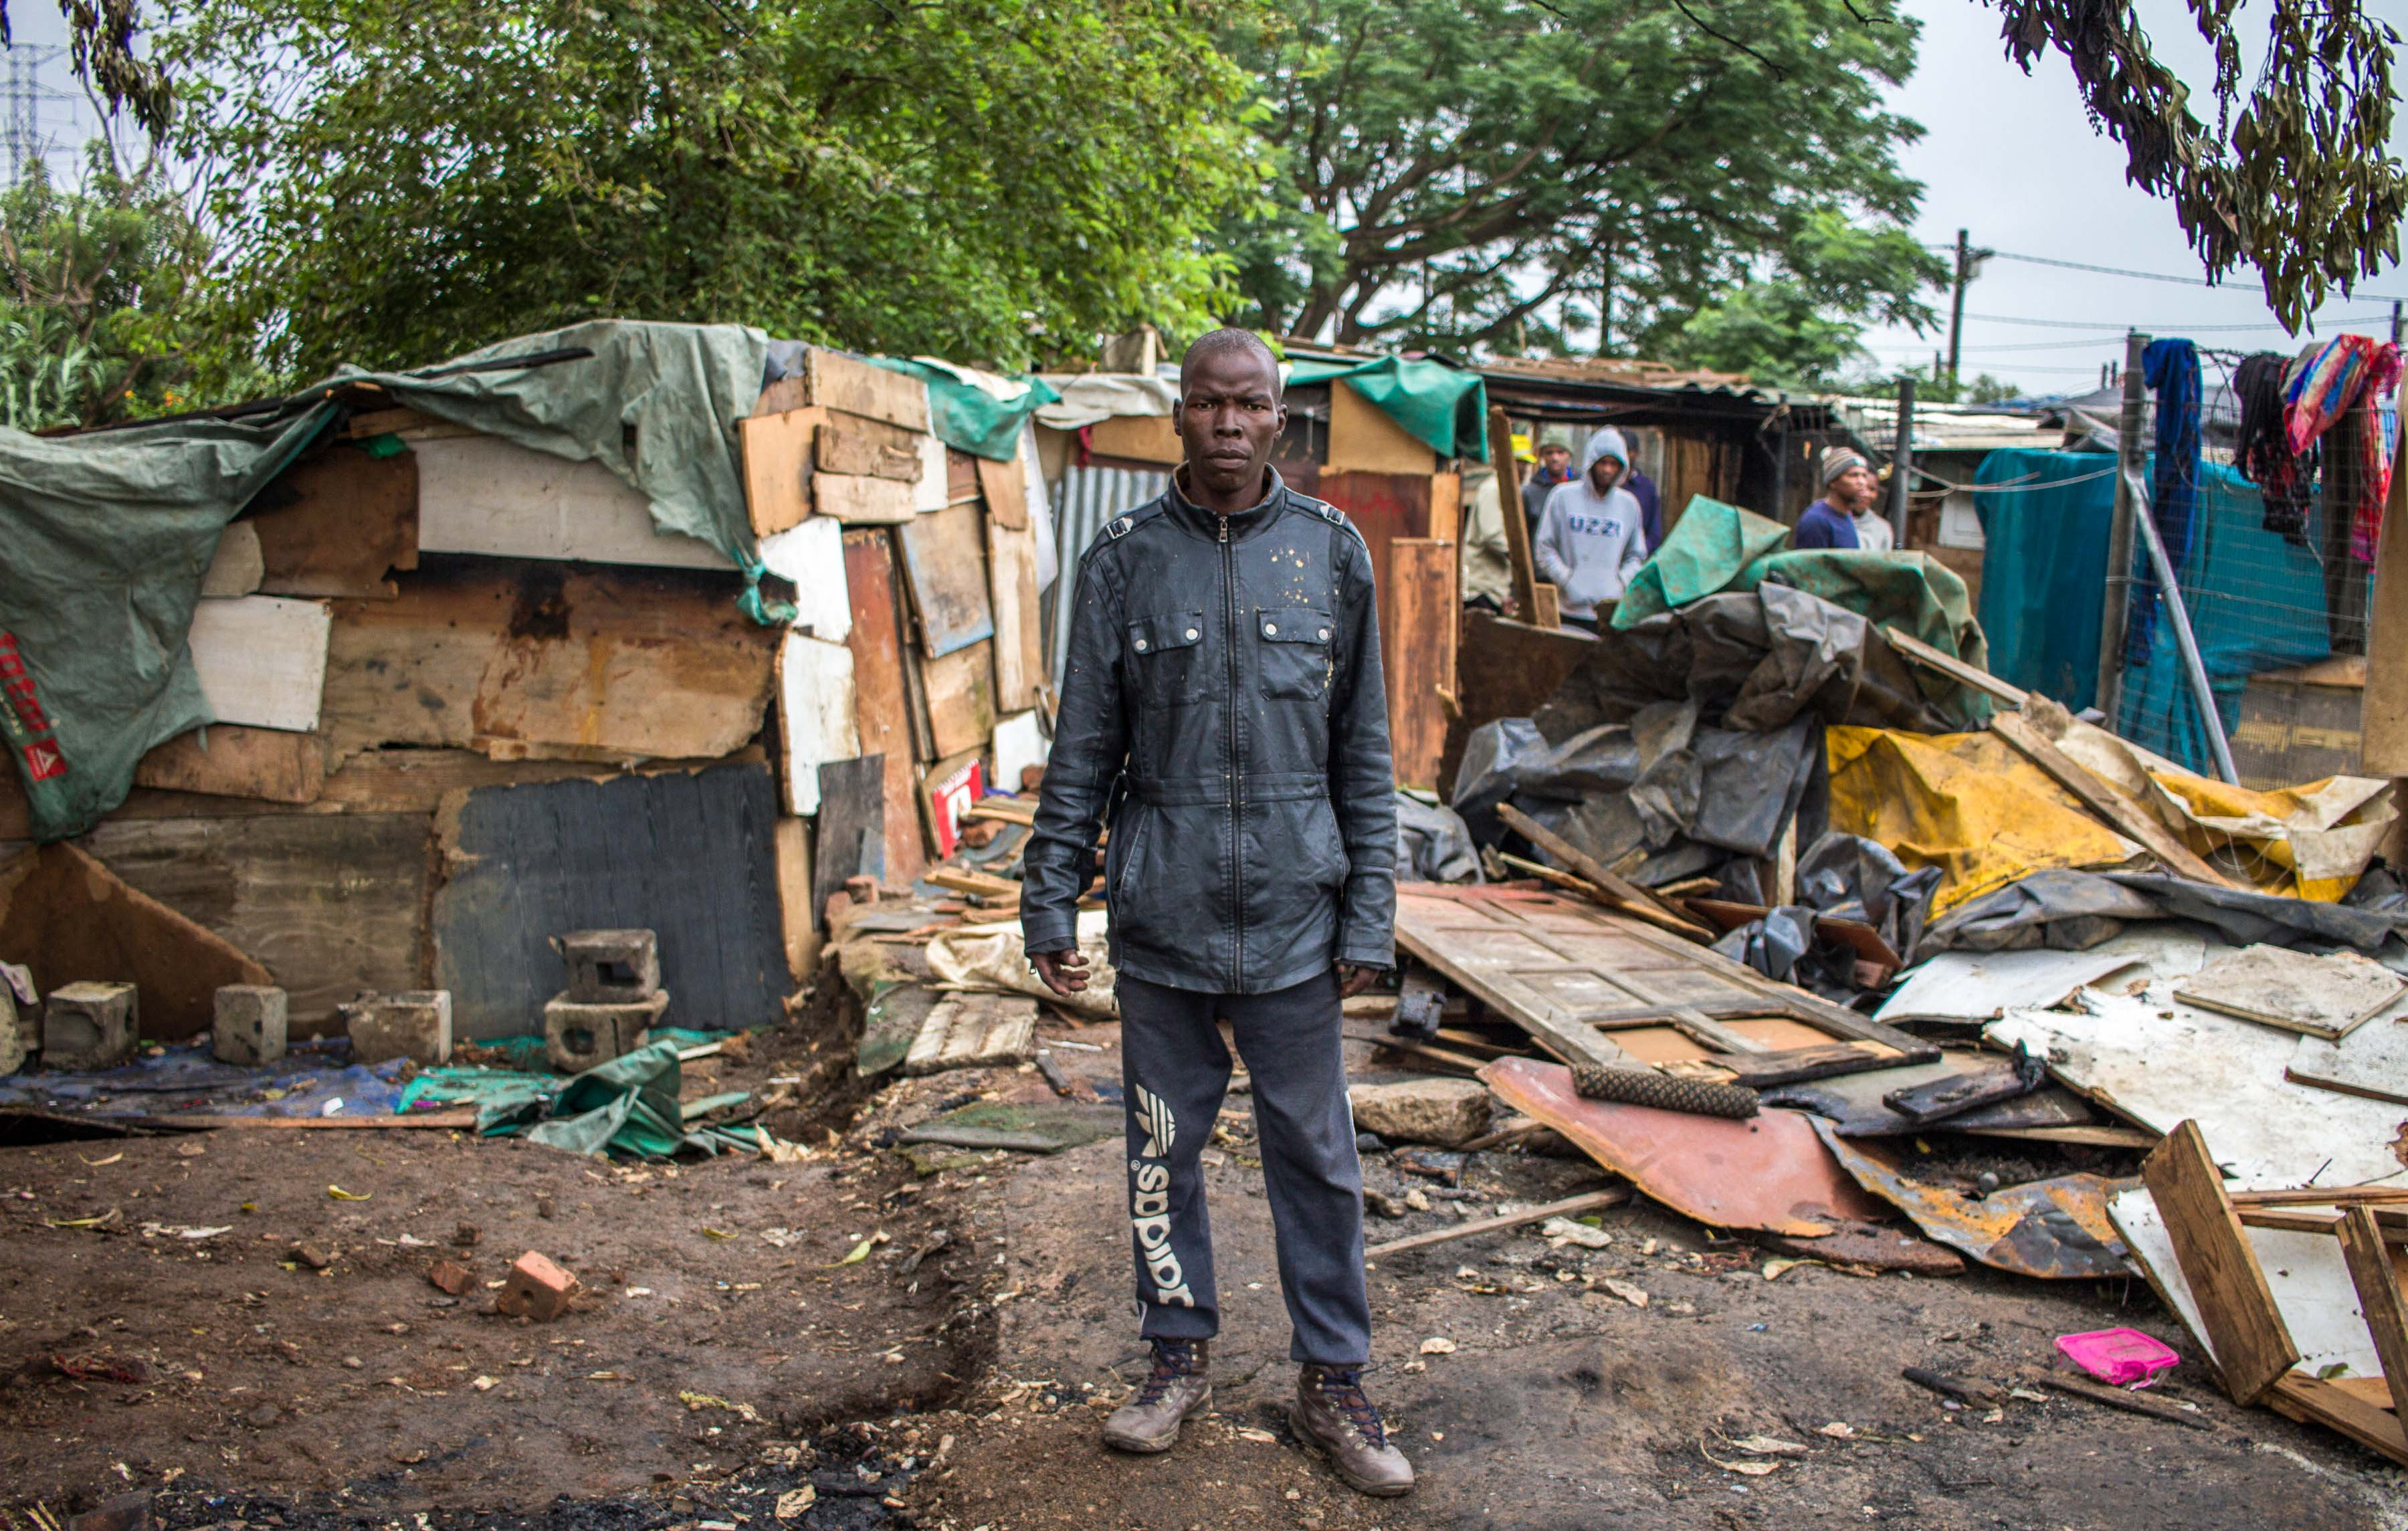 9 December 2019: Khehla Dladla, who has been tasked with managing safety in the settlement, managed to rescue a wheelchair user but could not save his shack from the flames.